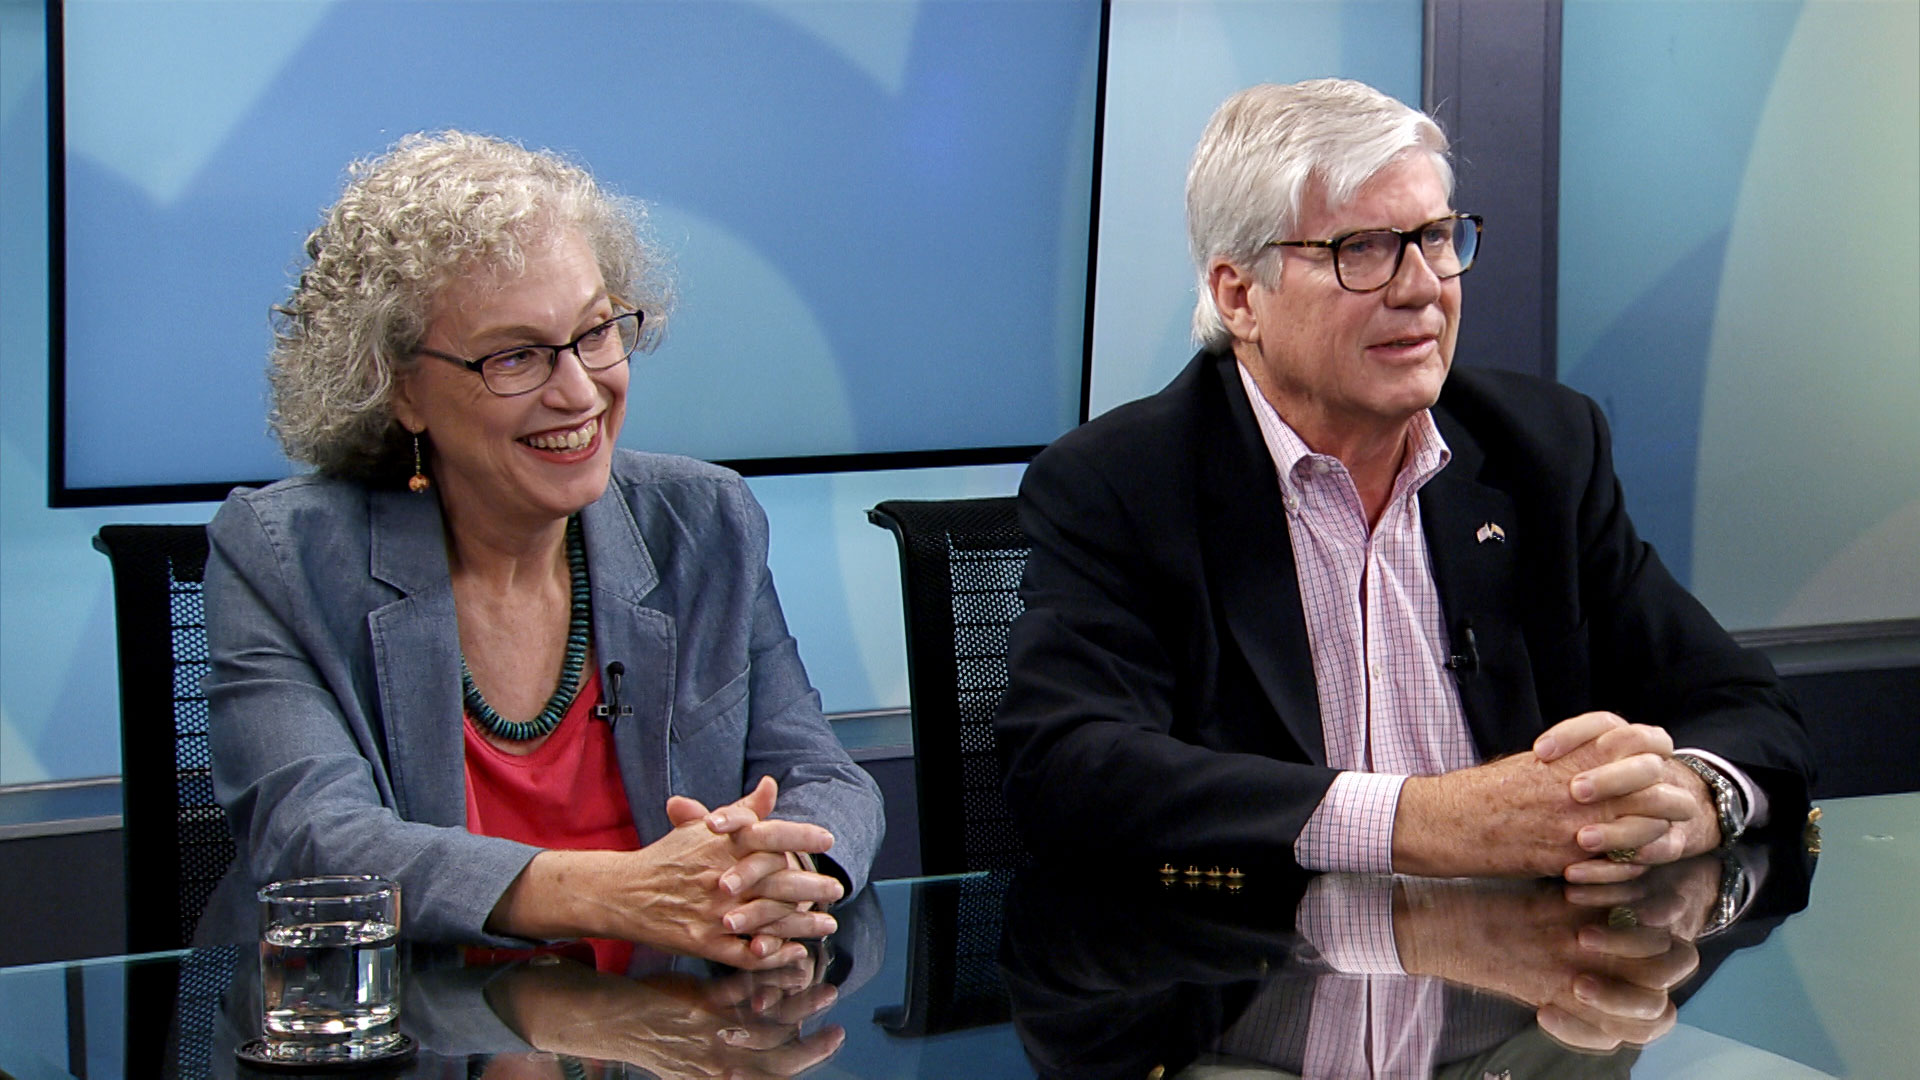 Pima County Democratic chair Alison Jones and Pima County Republican chair David Eppihimer sit for an interview at Arizona Public Media on September 3, 2019.